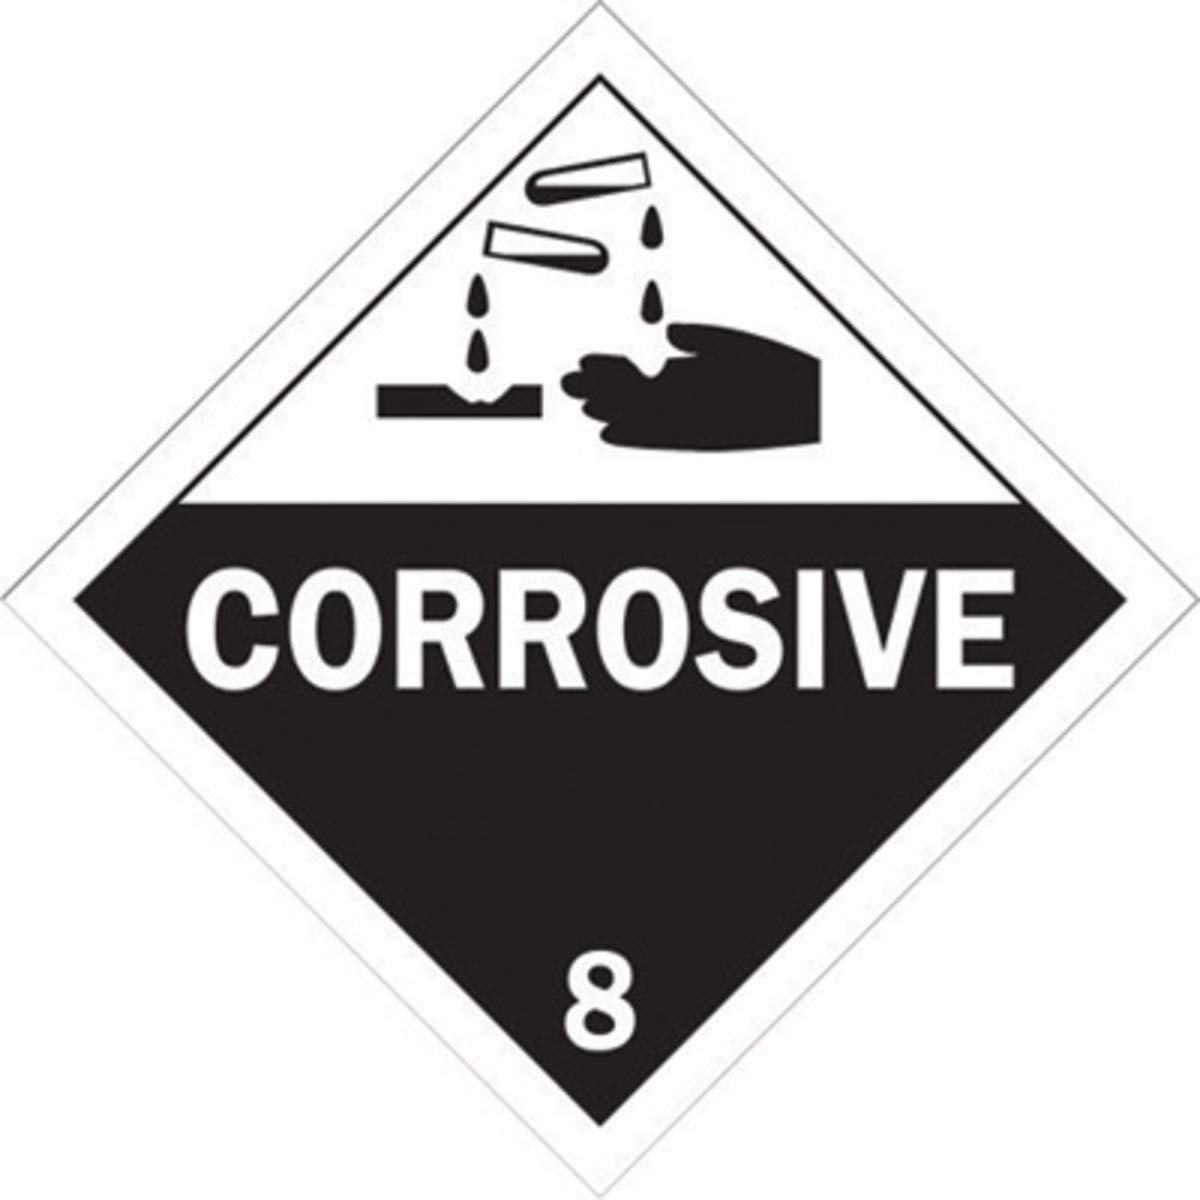 Brady 13/4'' X 13/4'' X .024'' Black On White B-101 Polycoated Tagstock DOT Vehicle Placard''CORROSIVE 8''